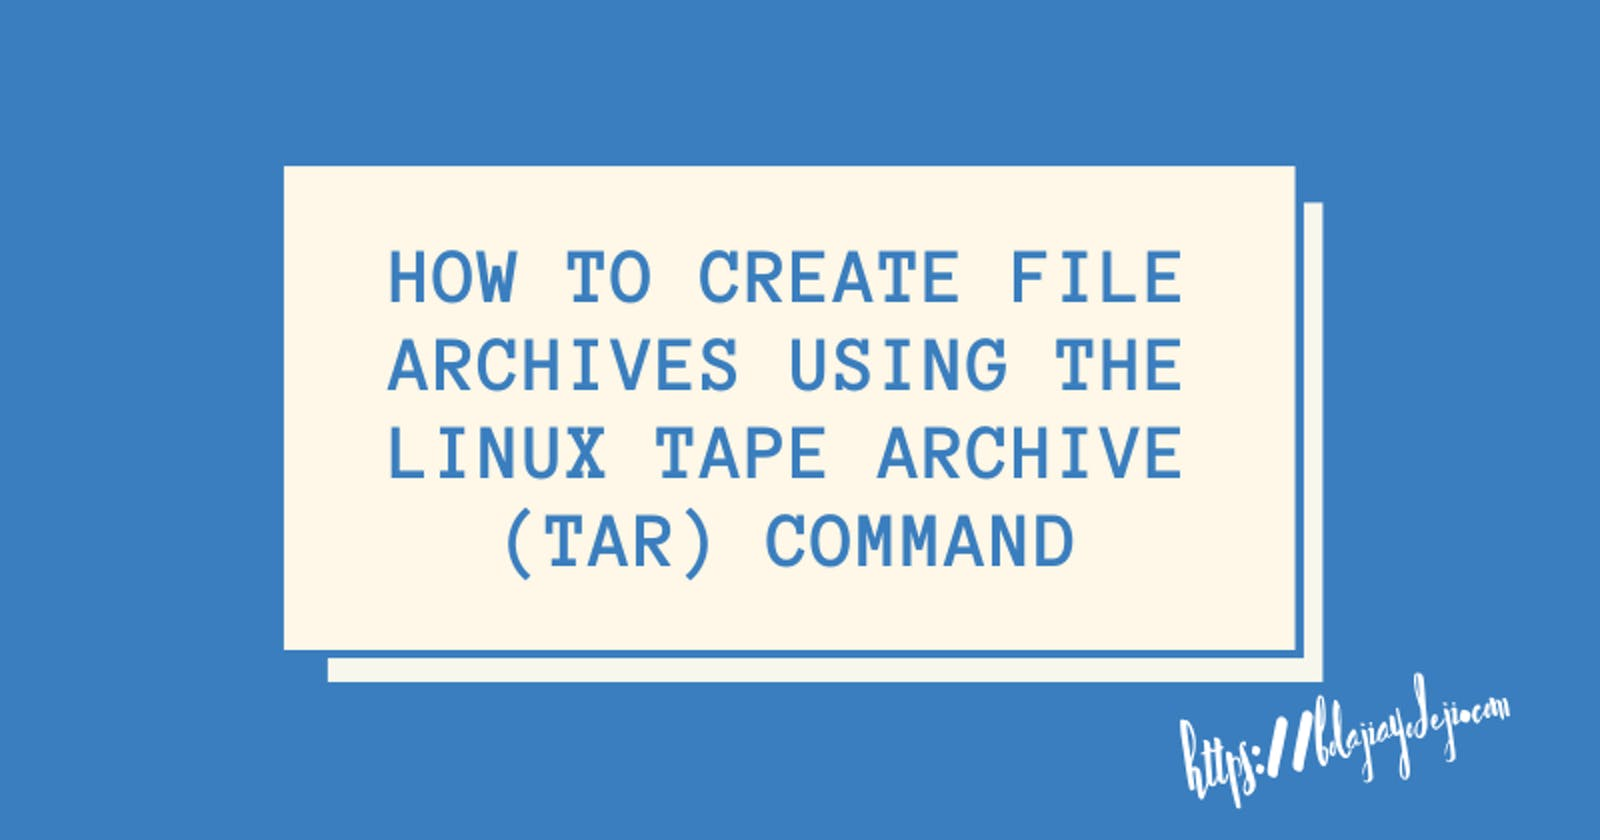 How to Create File Archives Using the Linux Tape Archive (TAR) Command